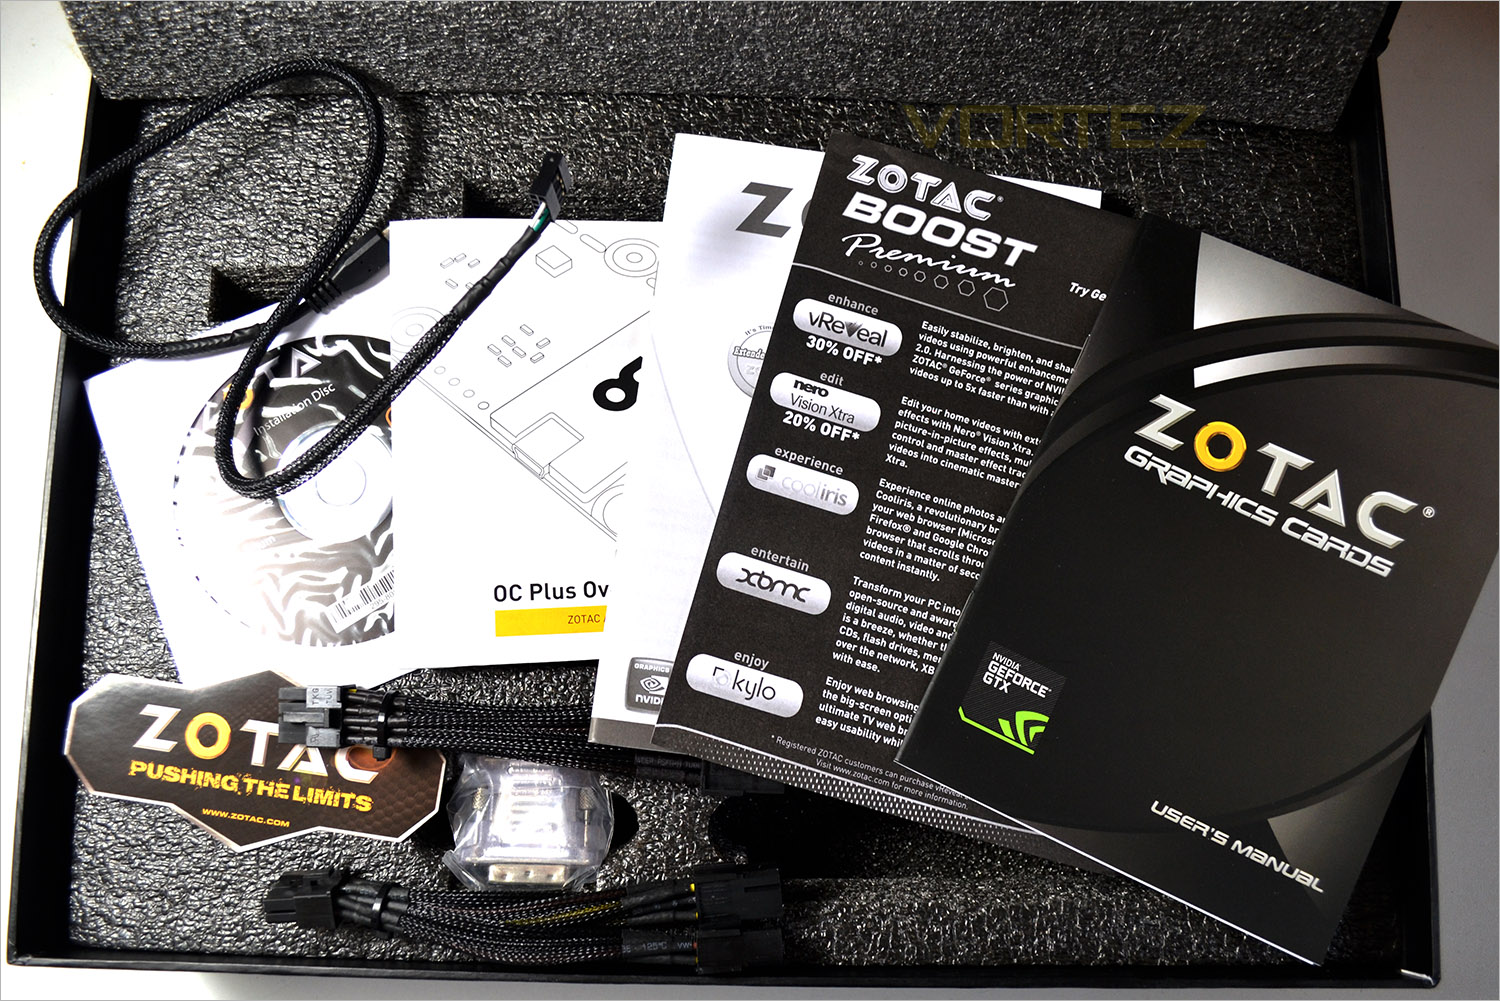 ZOTAC GTX 970 AMP! EXTREME & CORE Review - Packaging